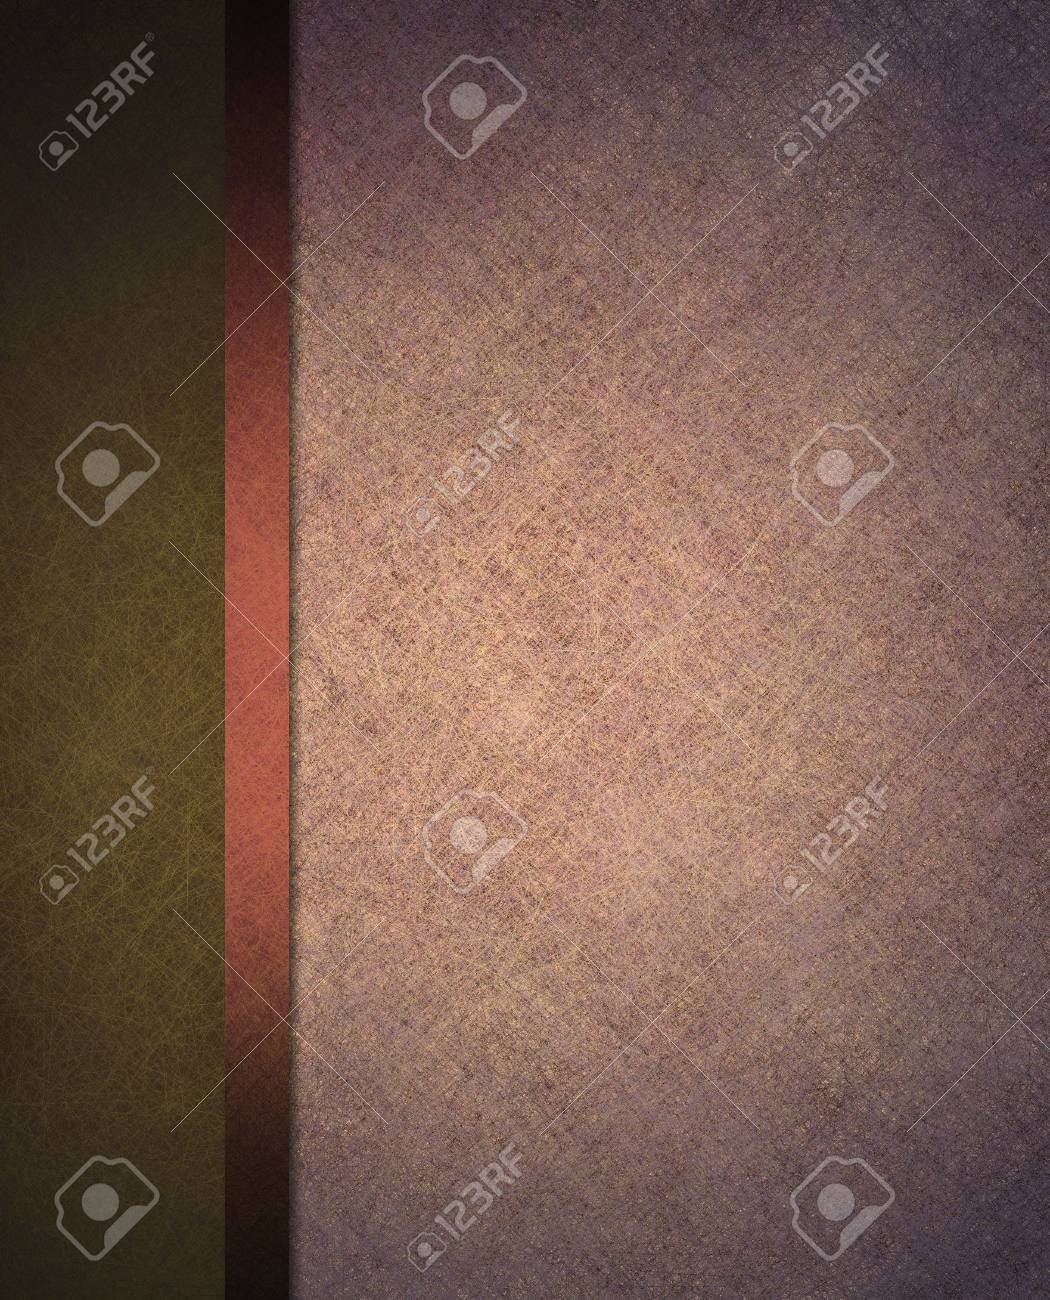 pale light pink and dark olive green background with banner side bar and ribbon stripe in website template layout or formal classic menu backdrop Stock Photo - 13143360